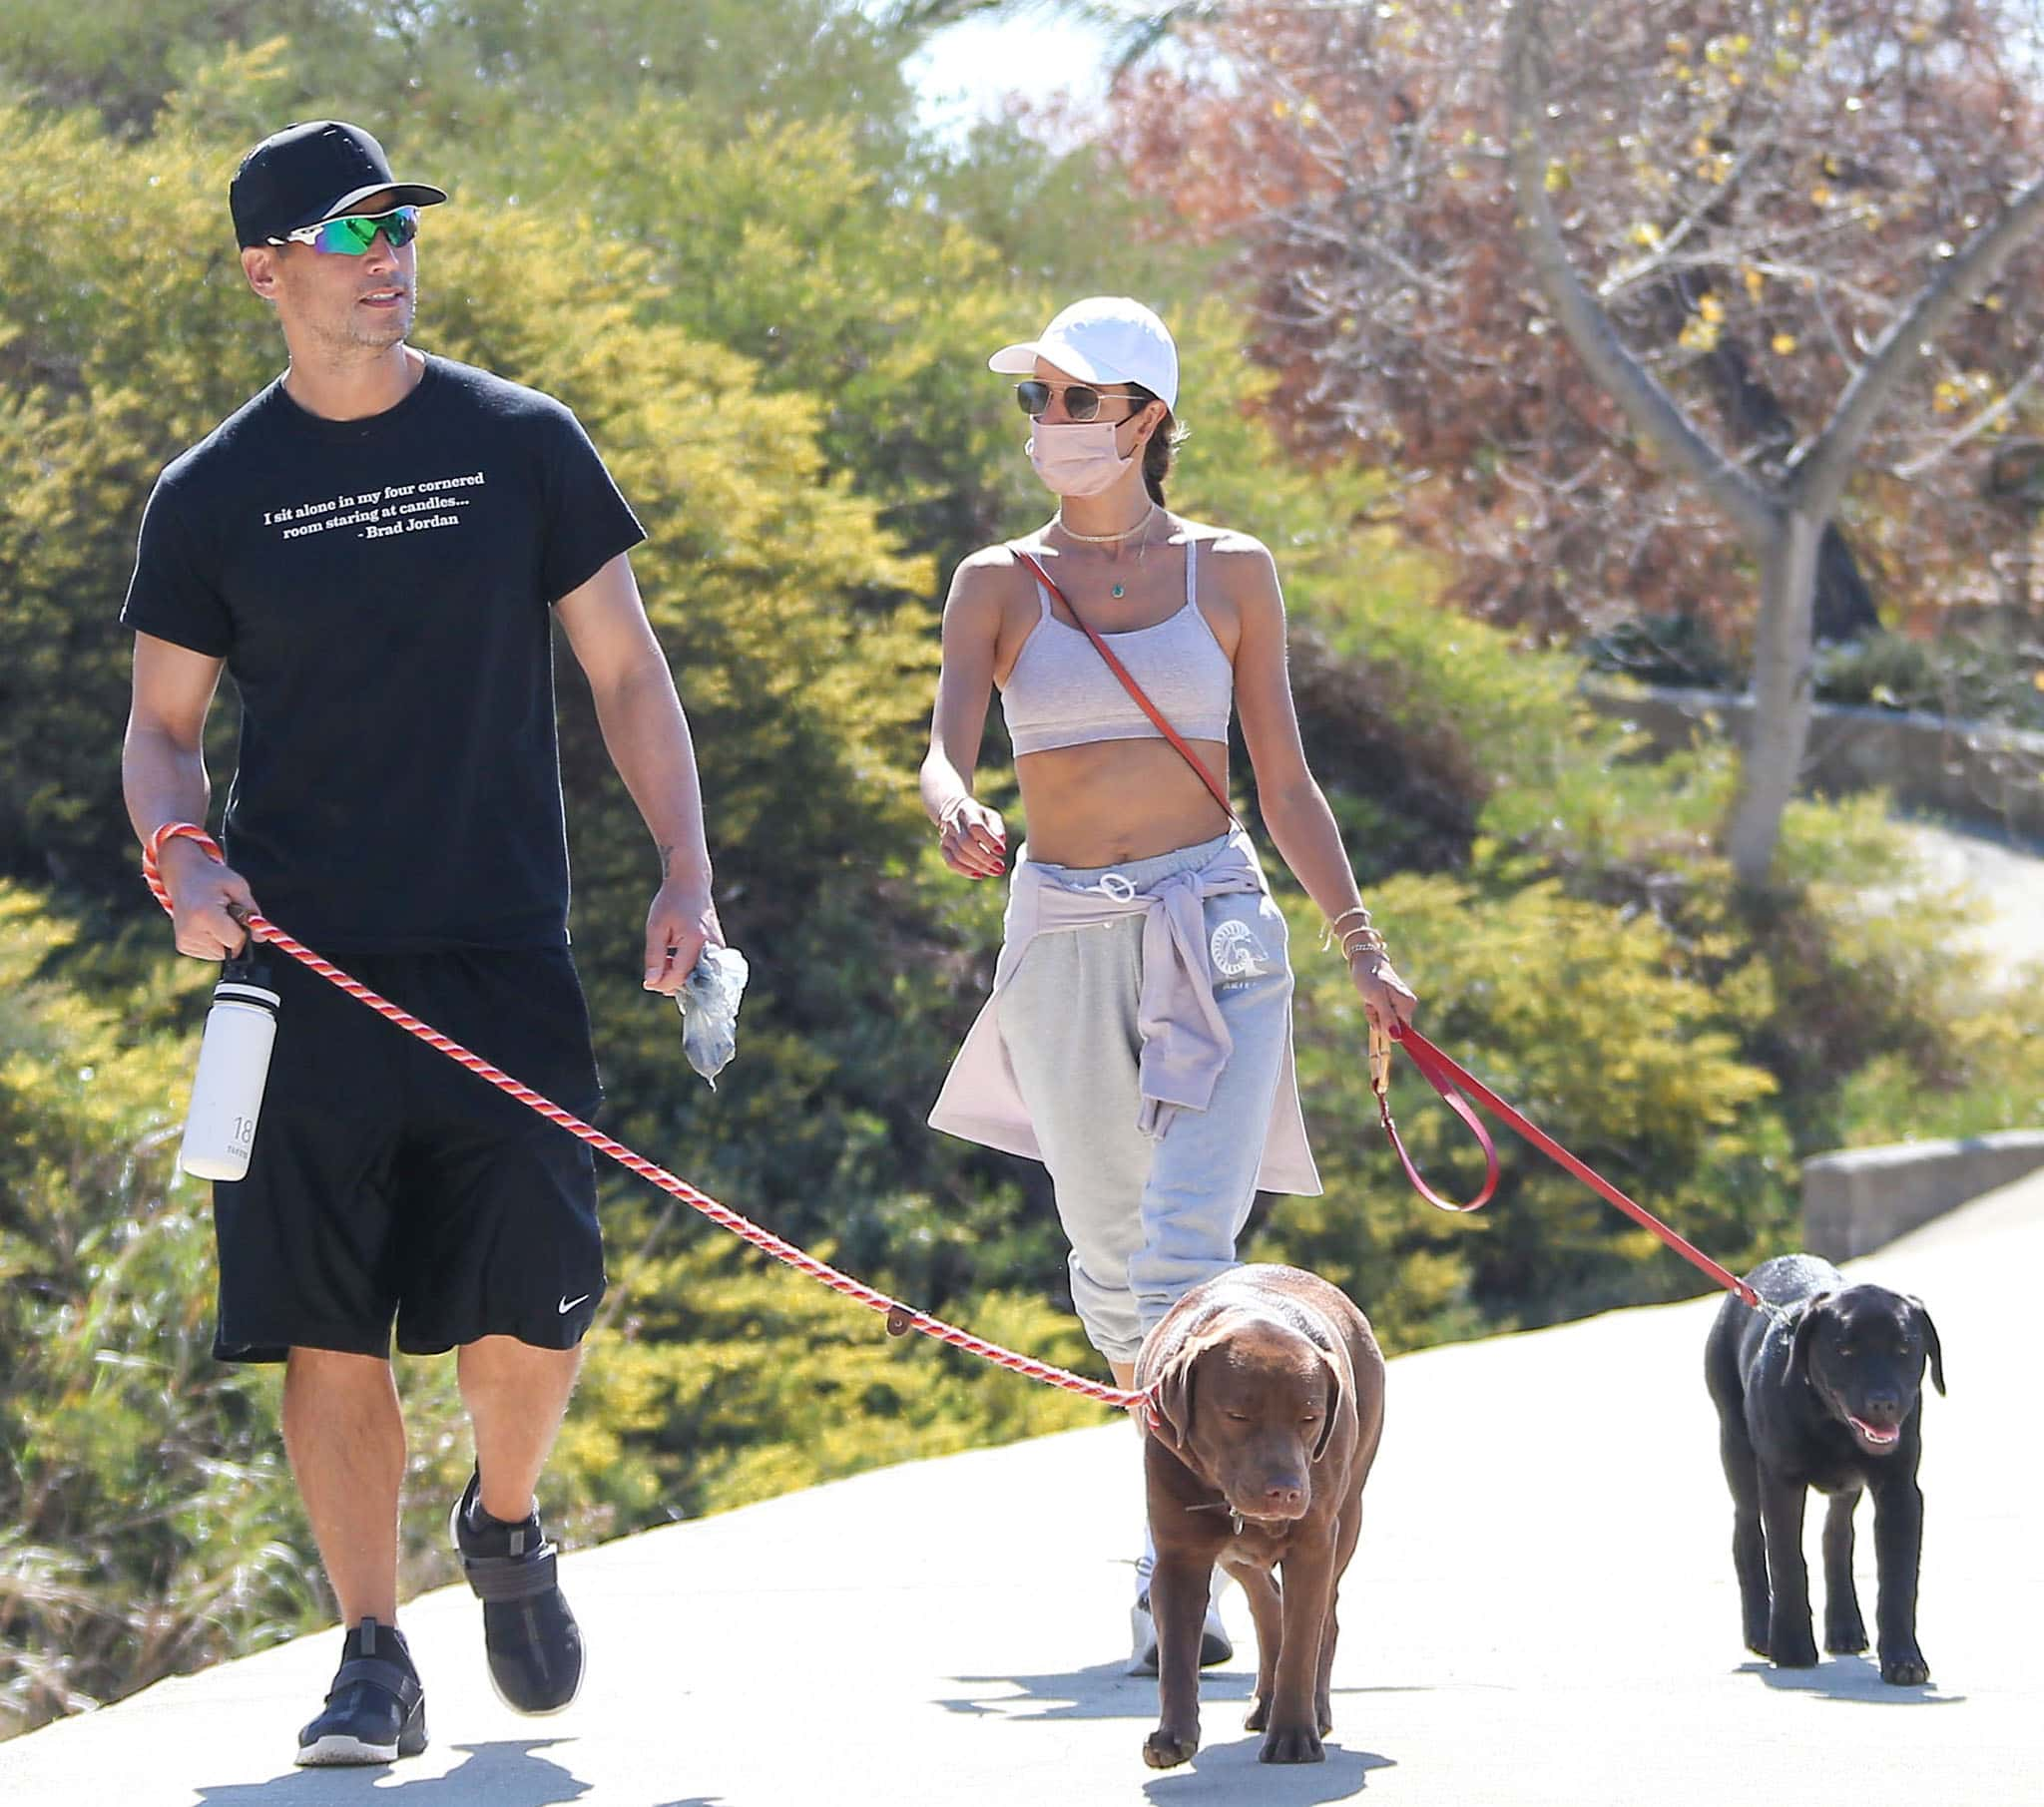 Alessandra Ambrosio's male companion wears a black tee with black basketball shorts, cap, and sneakers